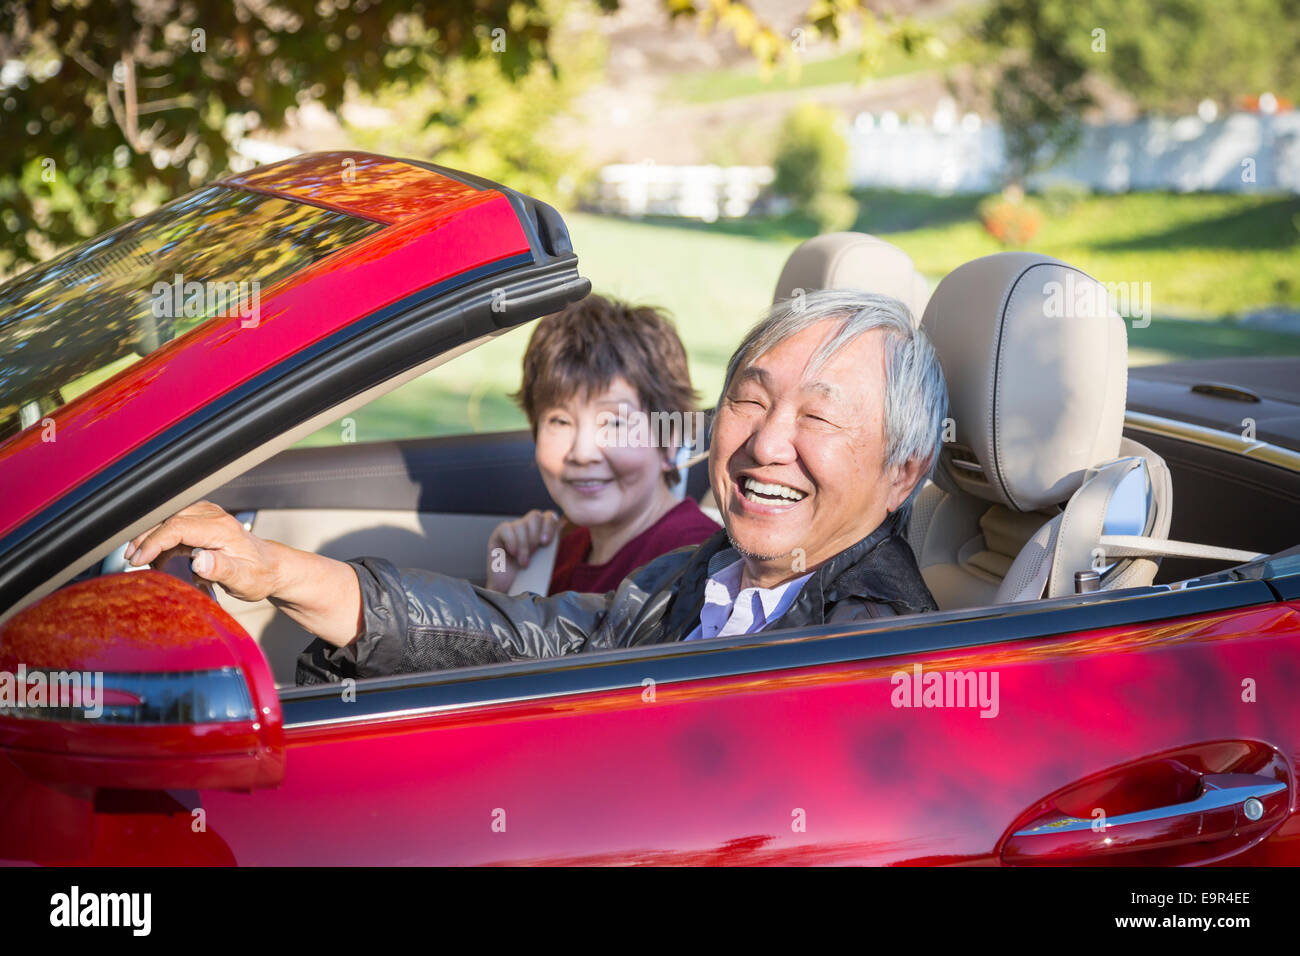 Attractive Happy Chinese Couple Enjoying An Afternoon Drive in Their Convertible. - Stock Image